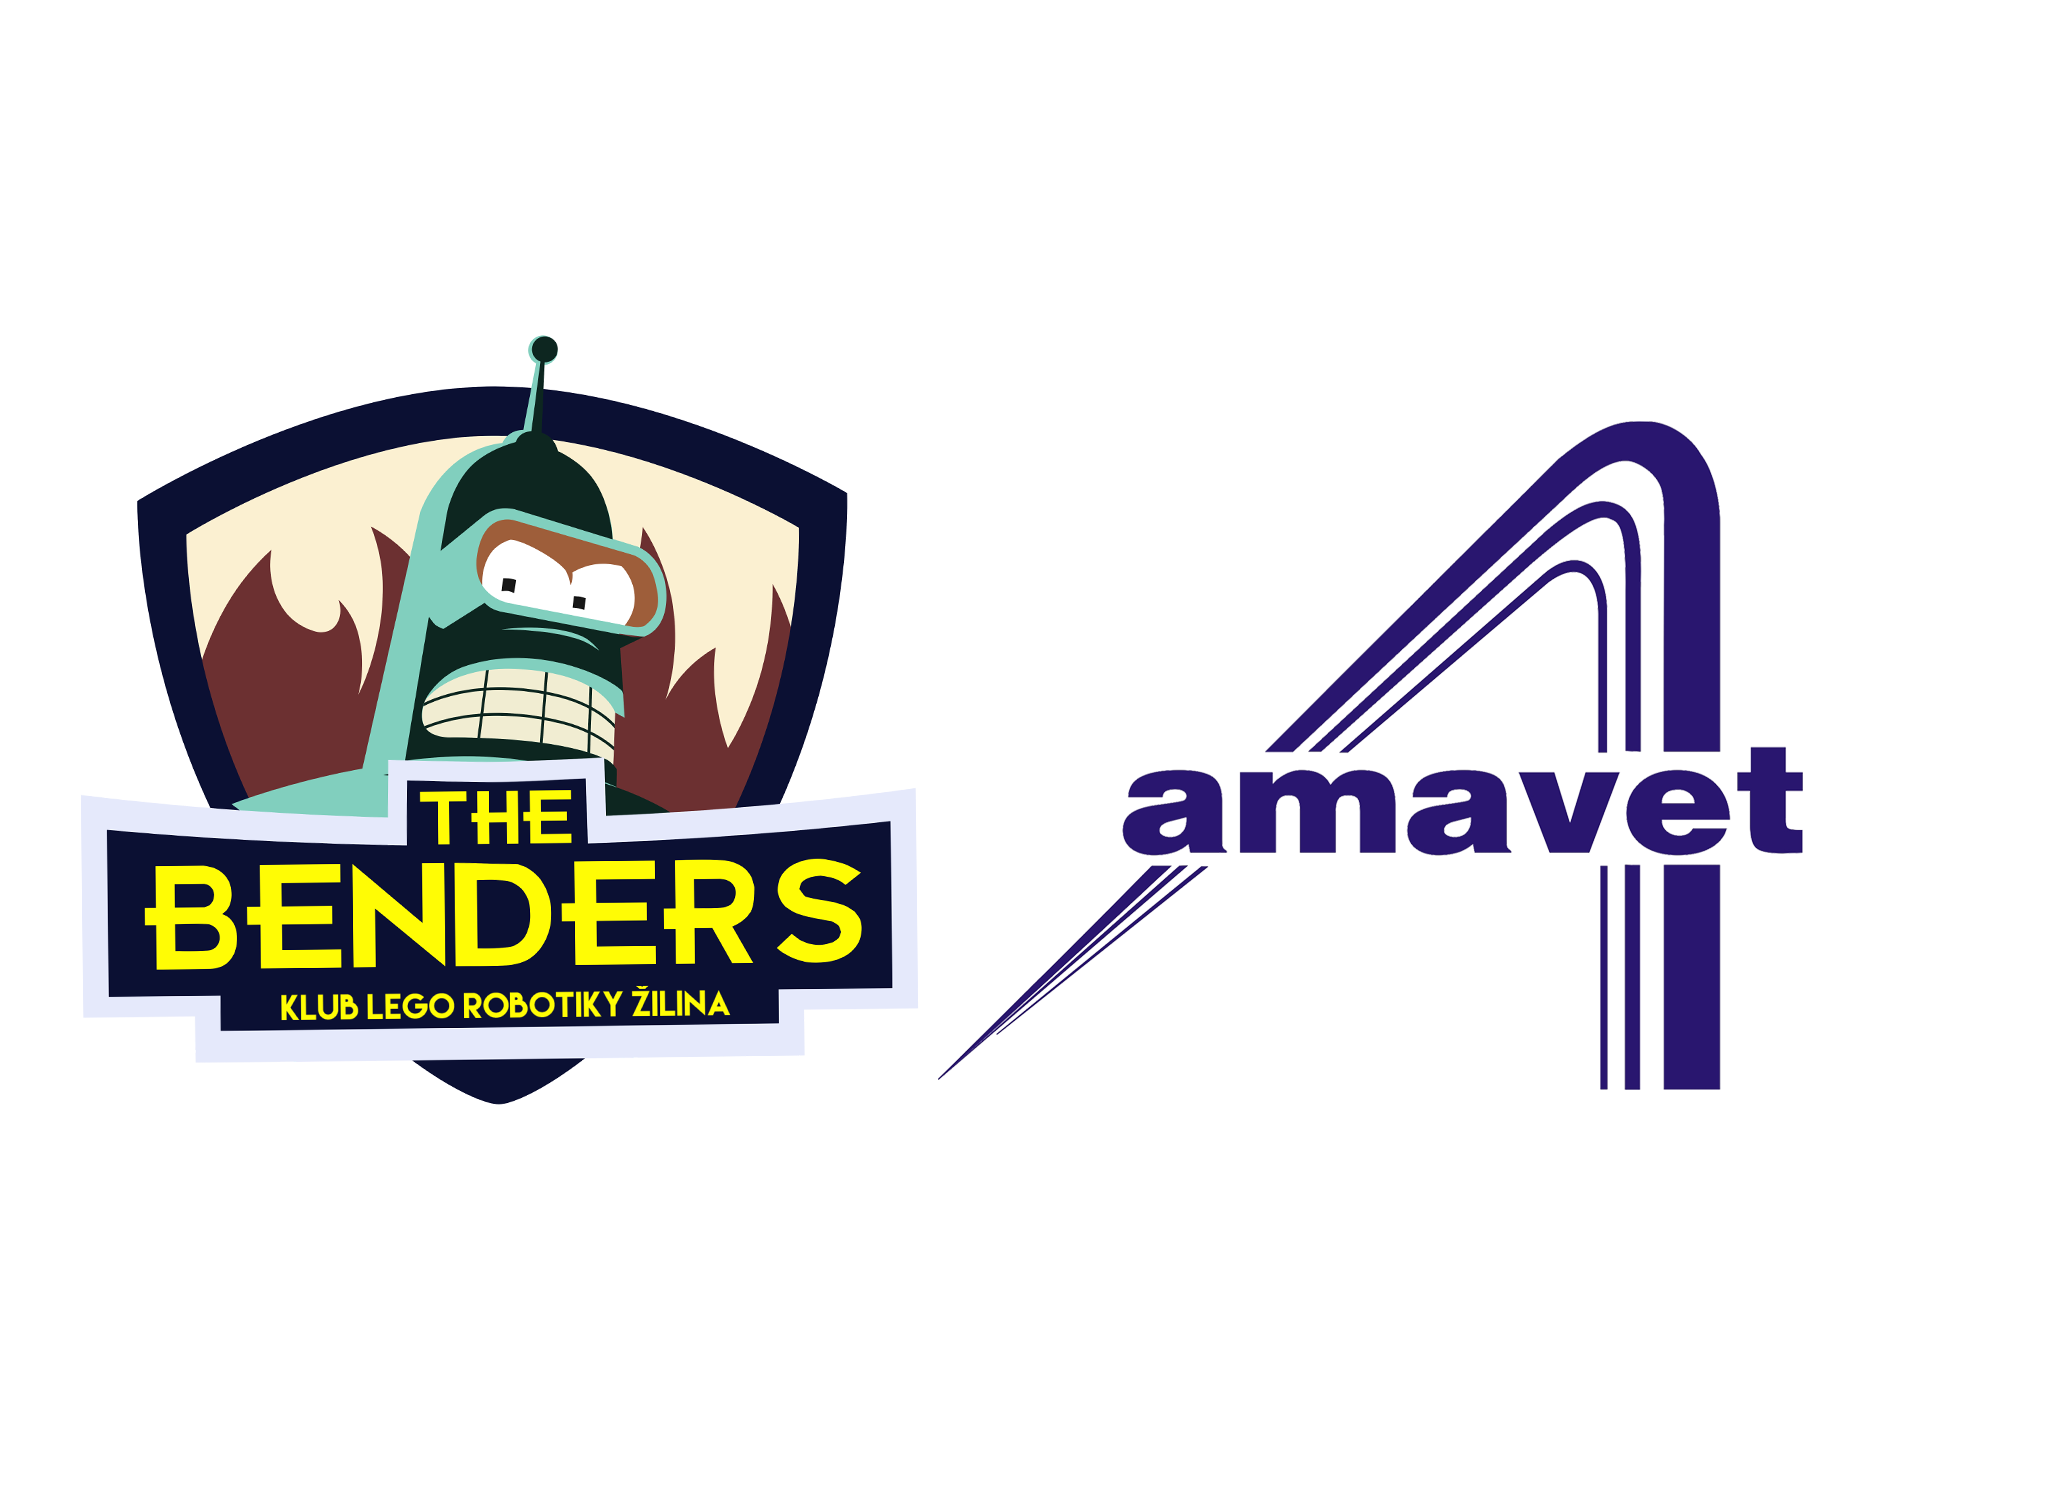 The Benders – AMAVET klub robotiky 958